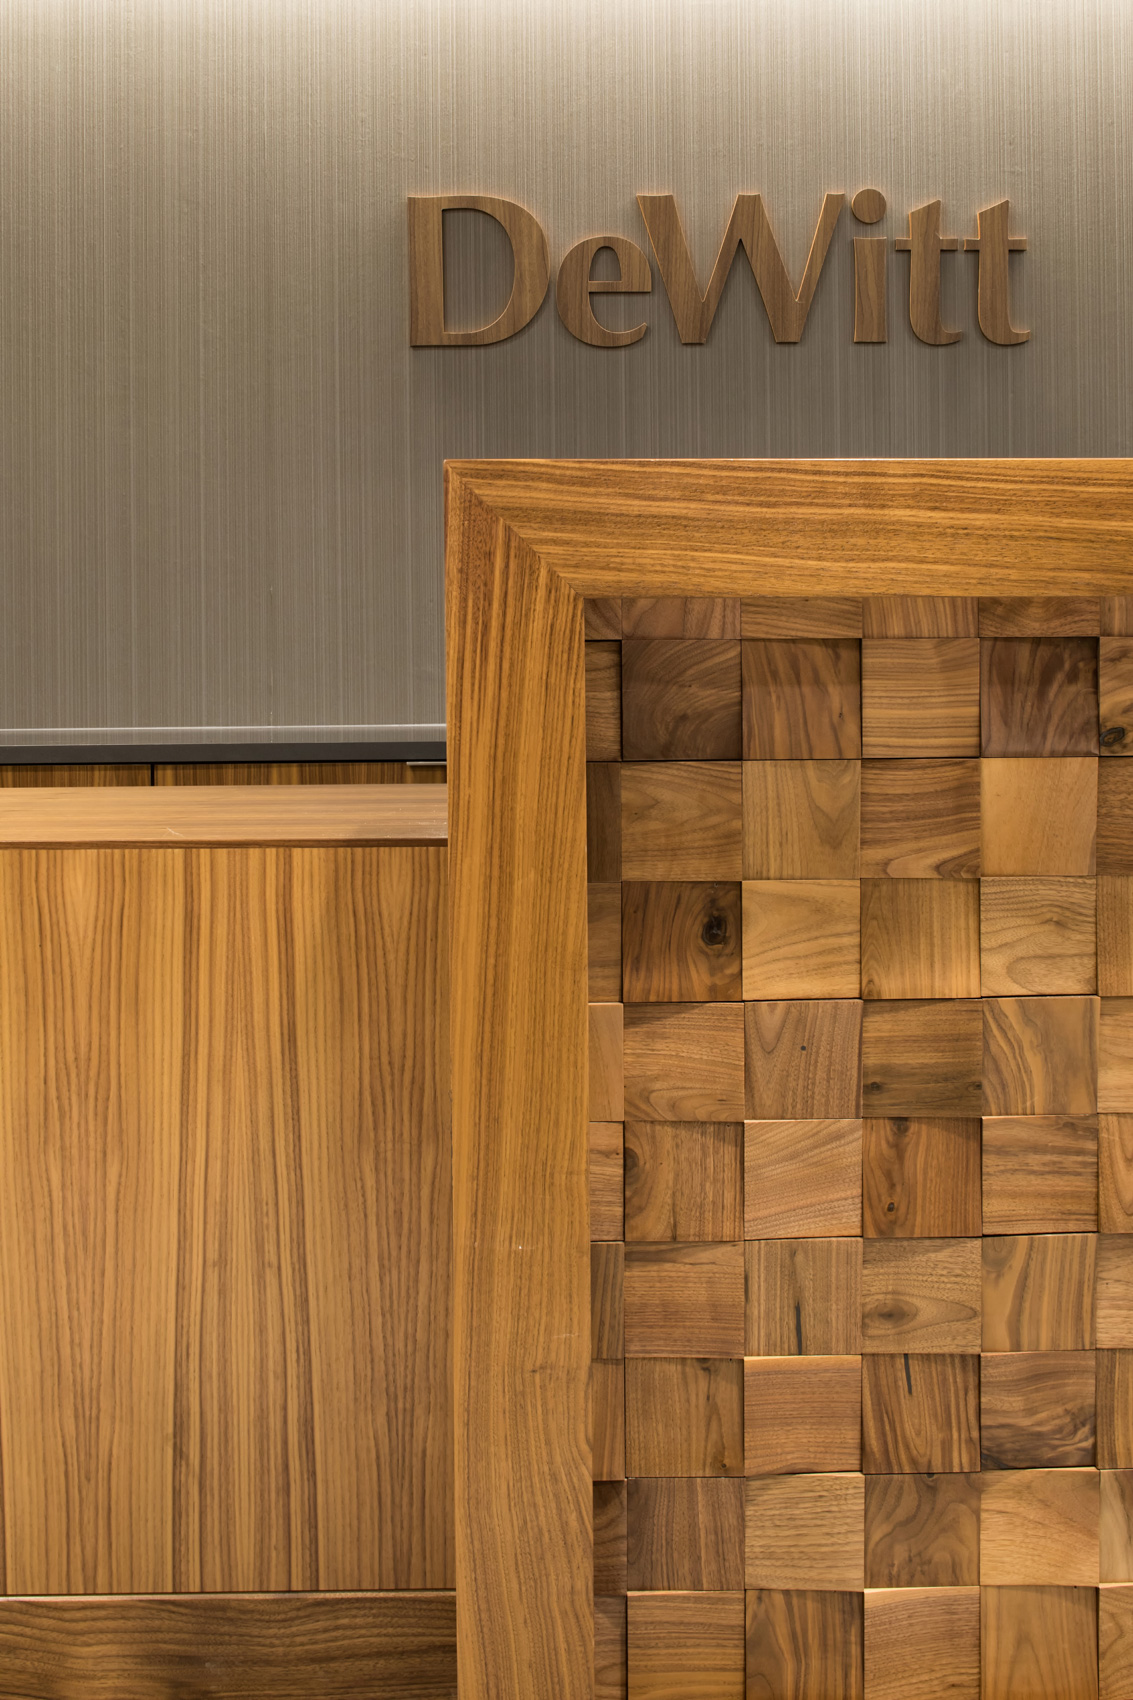 Interior design includes elegant woodwork detail at law office